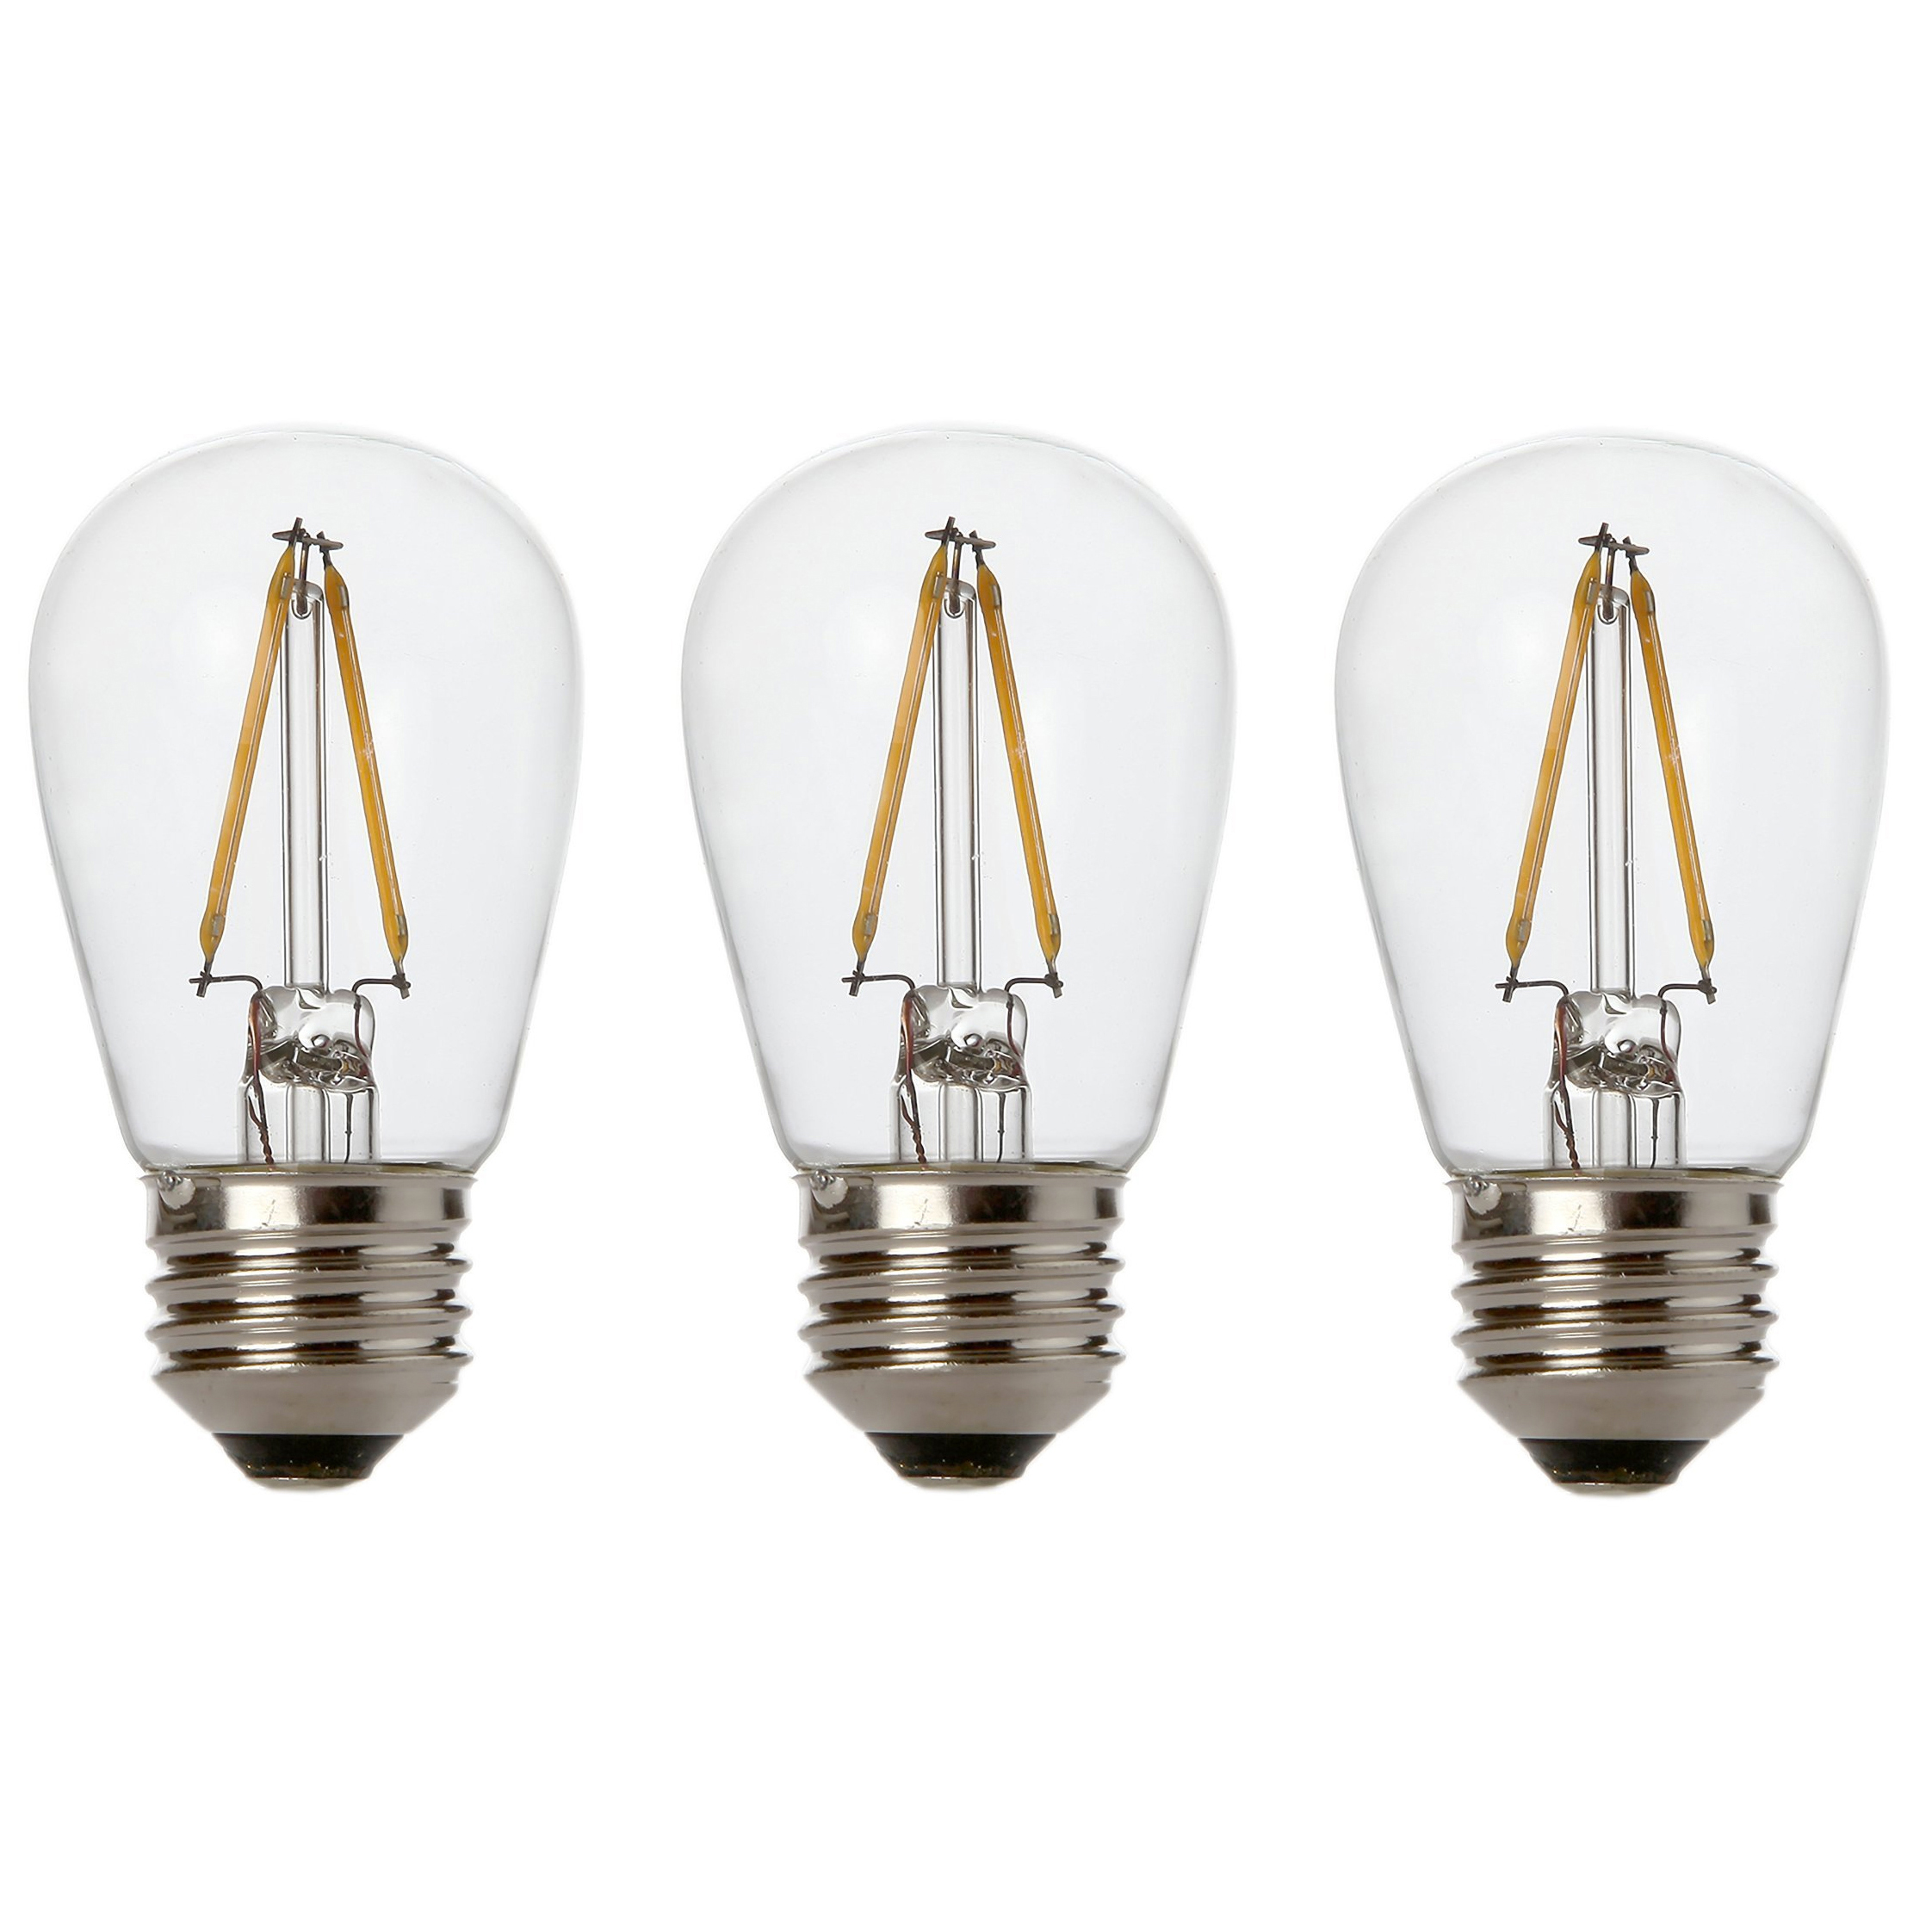 Newhouse Lighting 2W S14 LED Replacement String Light Bulbs 3-Pack